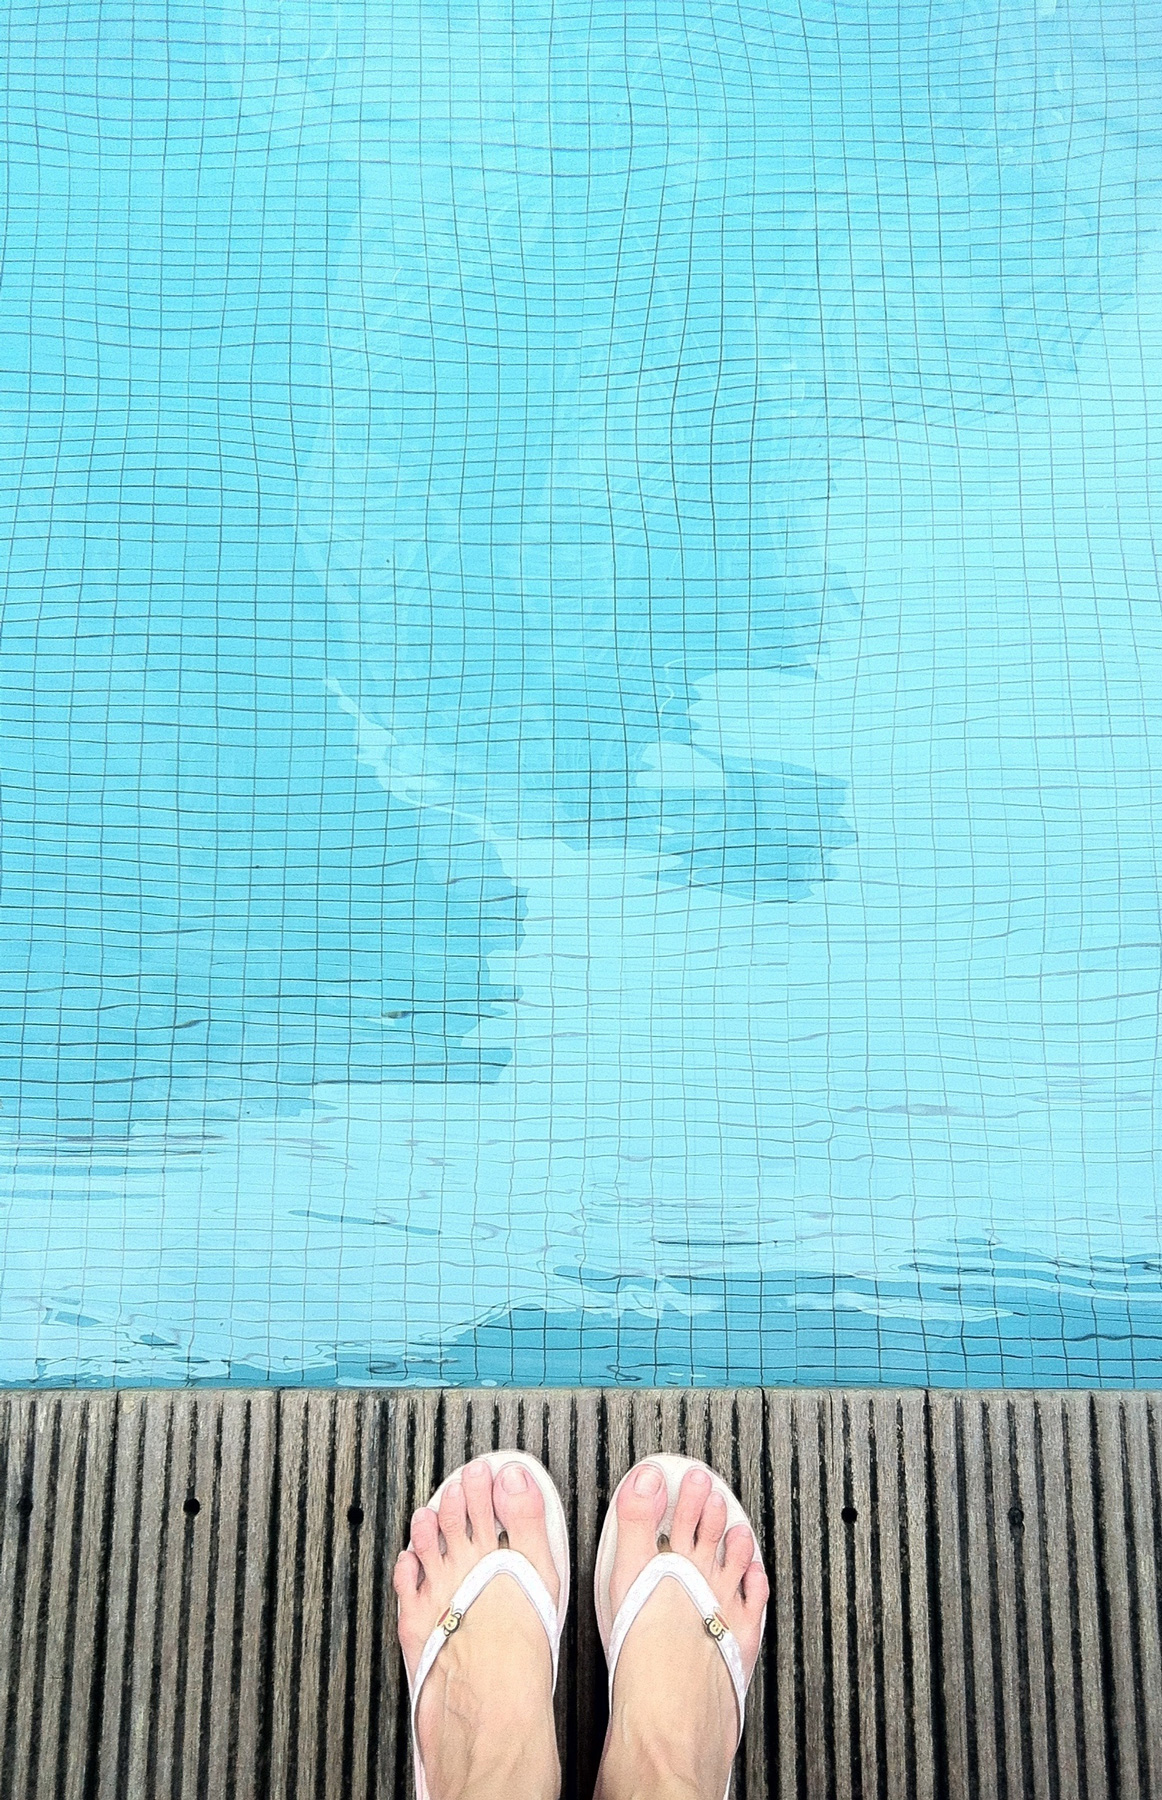 Feet at edge of swimming pool